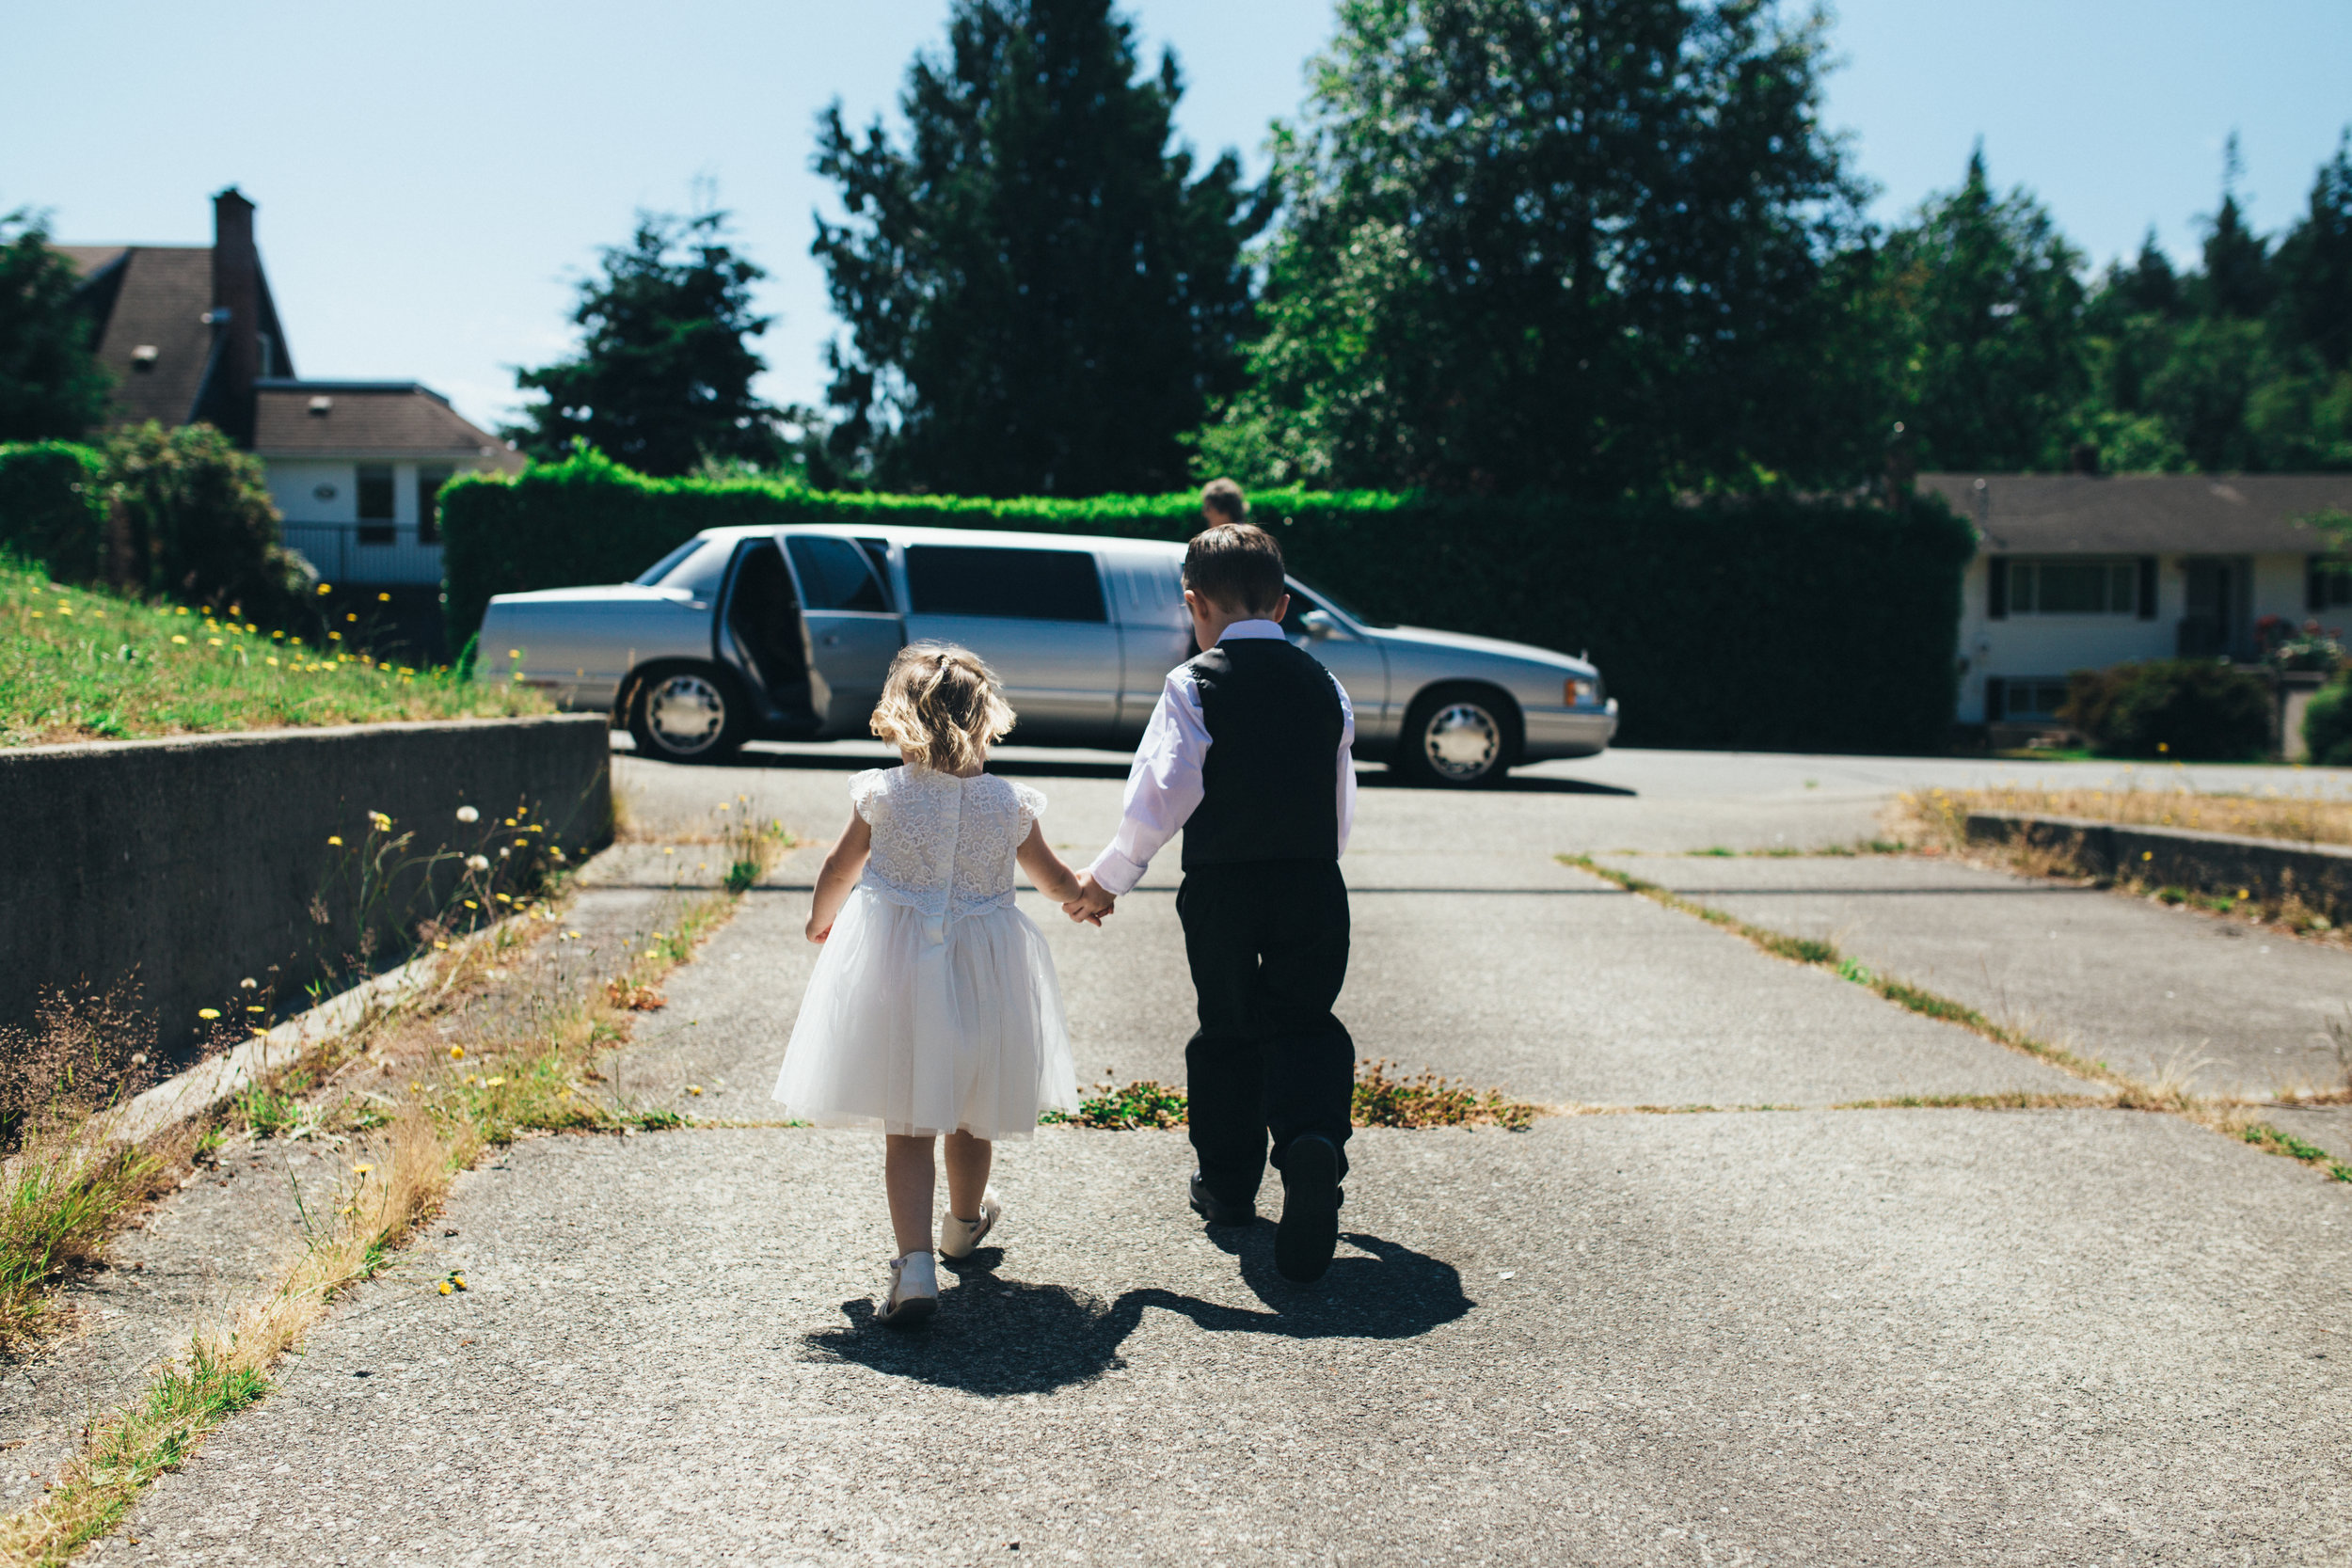 Stretch Limousine - Accommodates up to 20 passengers. Pricing is $185 per hour. Call to book!